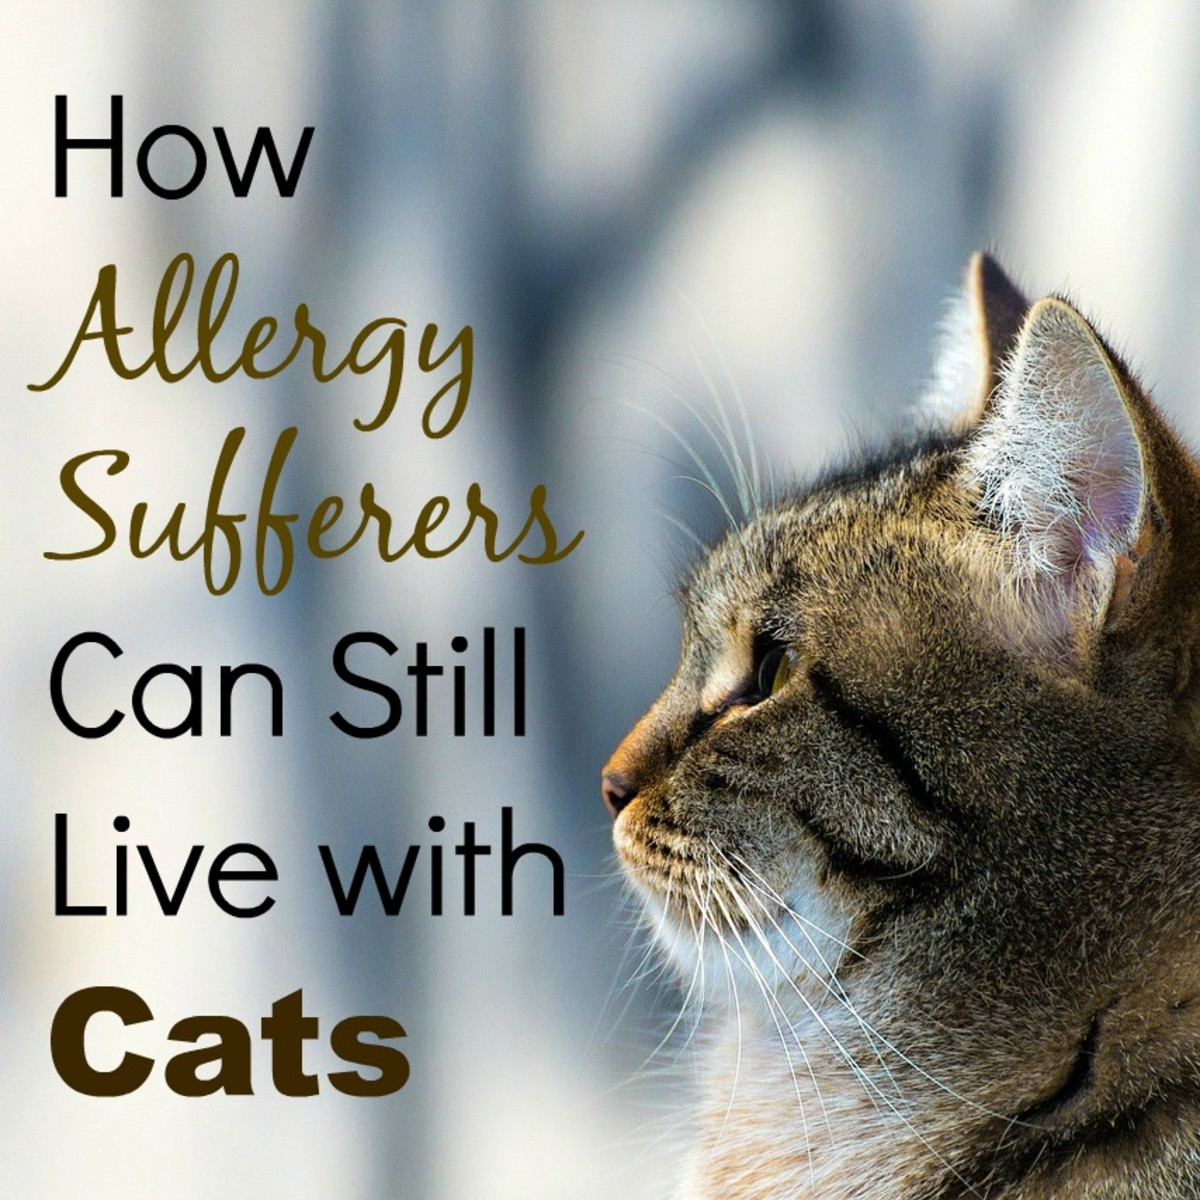 Do you have cat allergies? Don't despair just yet. You don't have to give up your dream of having your own furry friend!